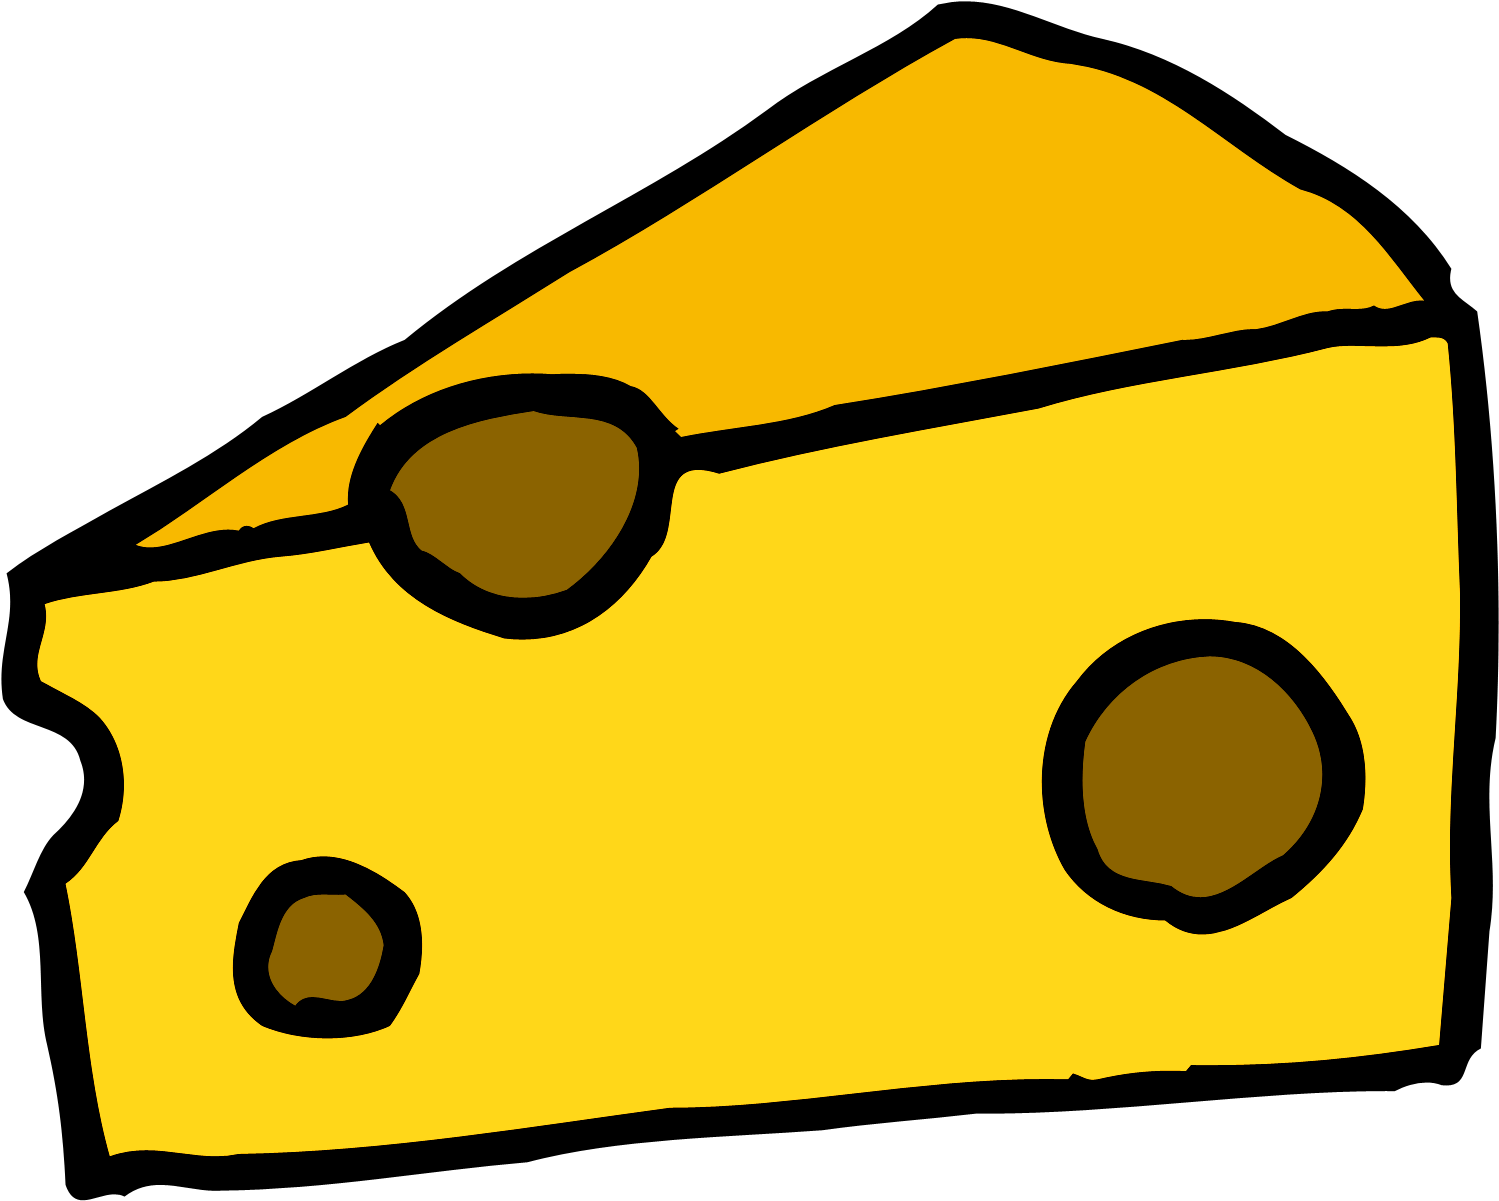 The Cheese Cartoon Transparent Background.